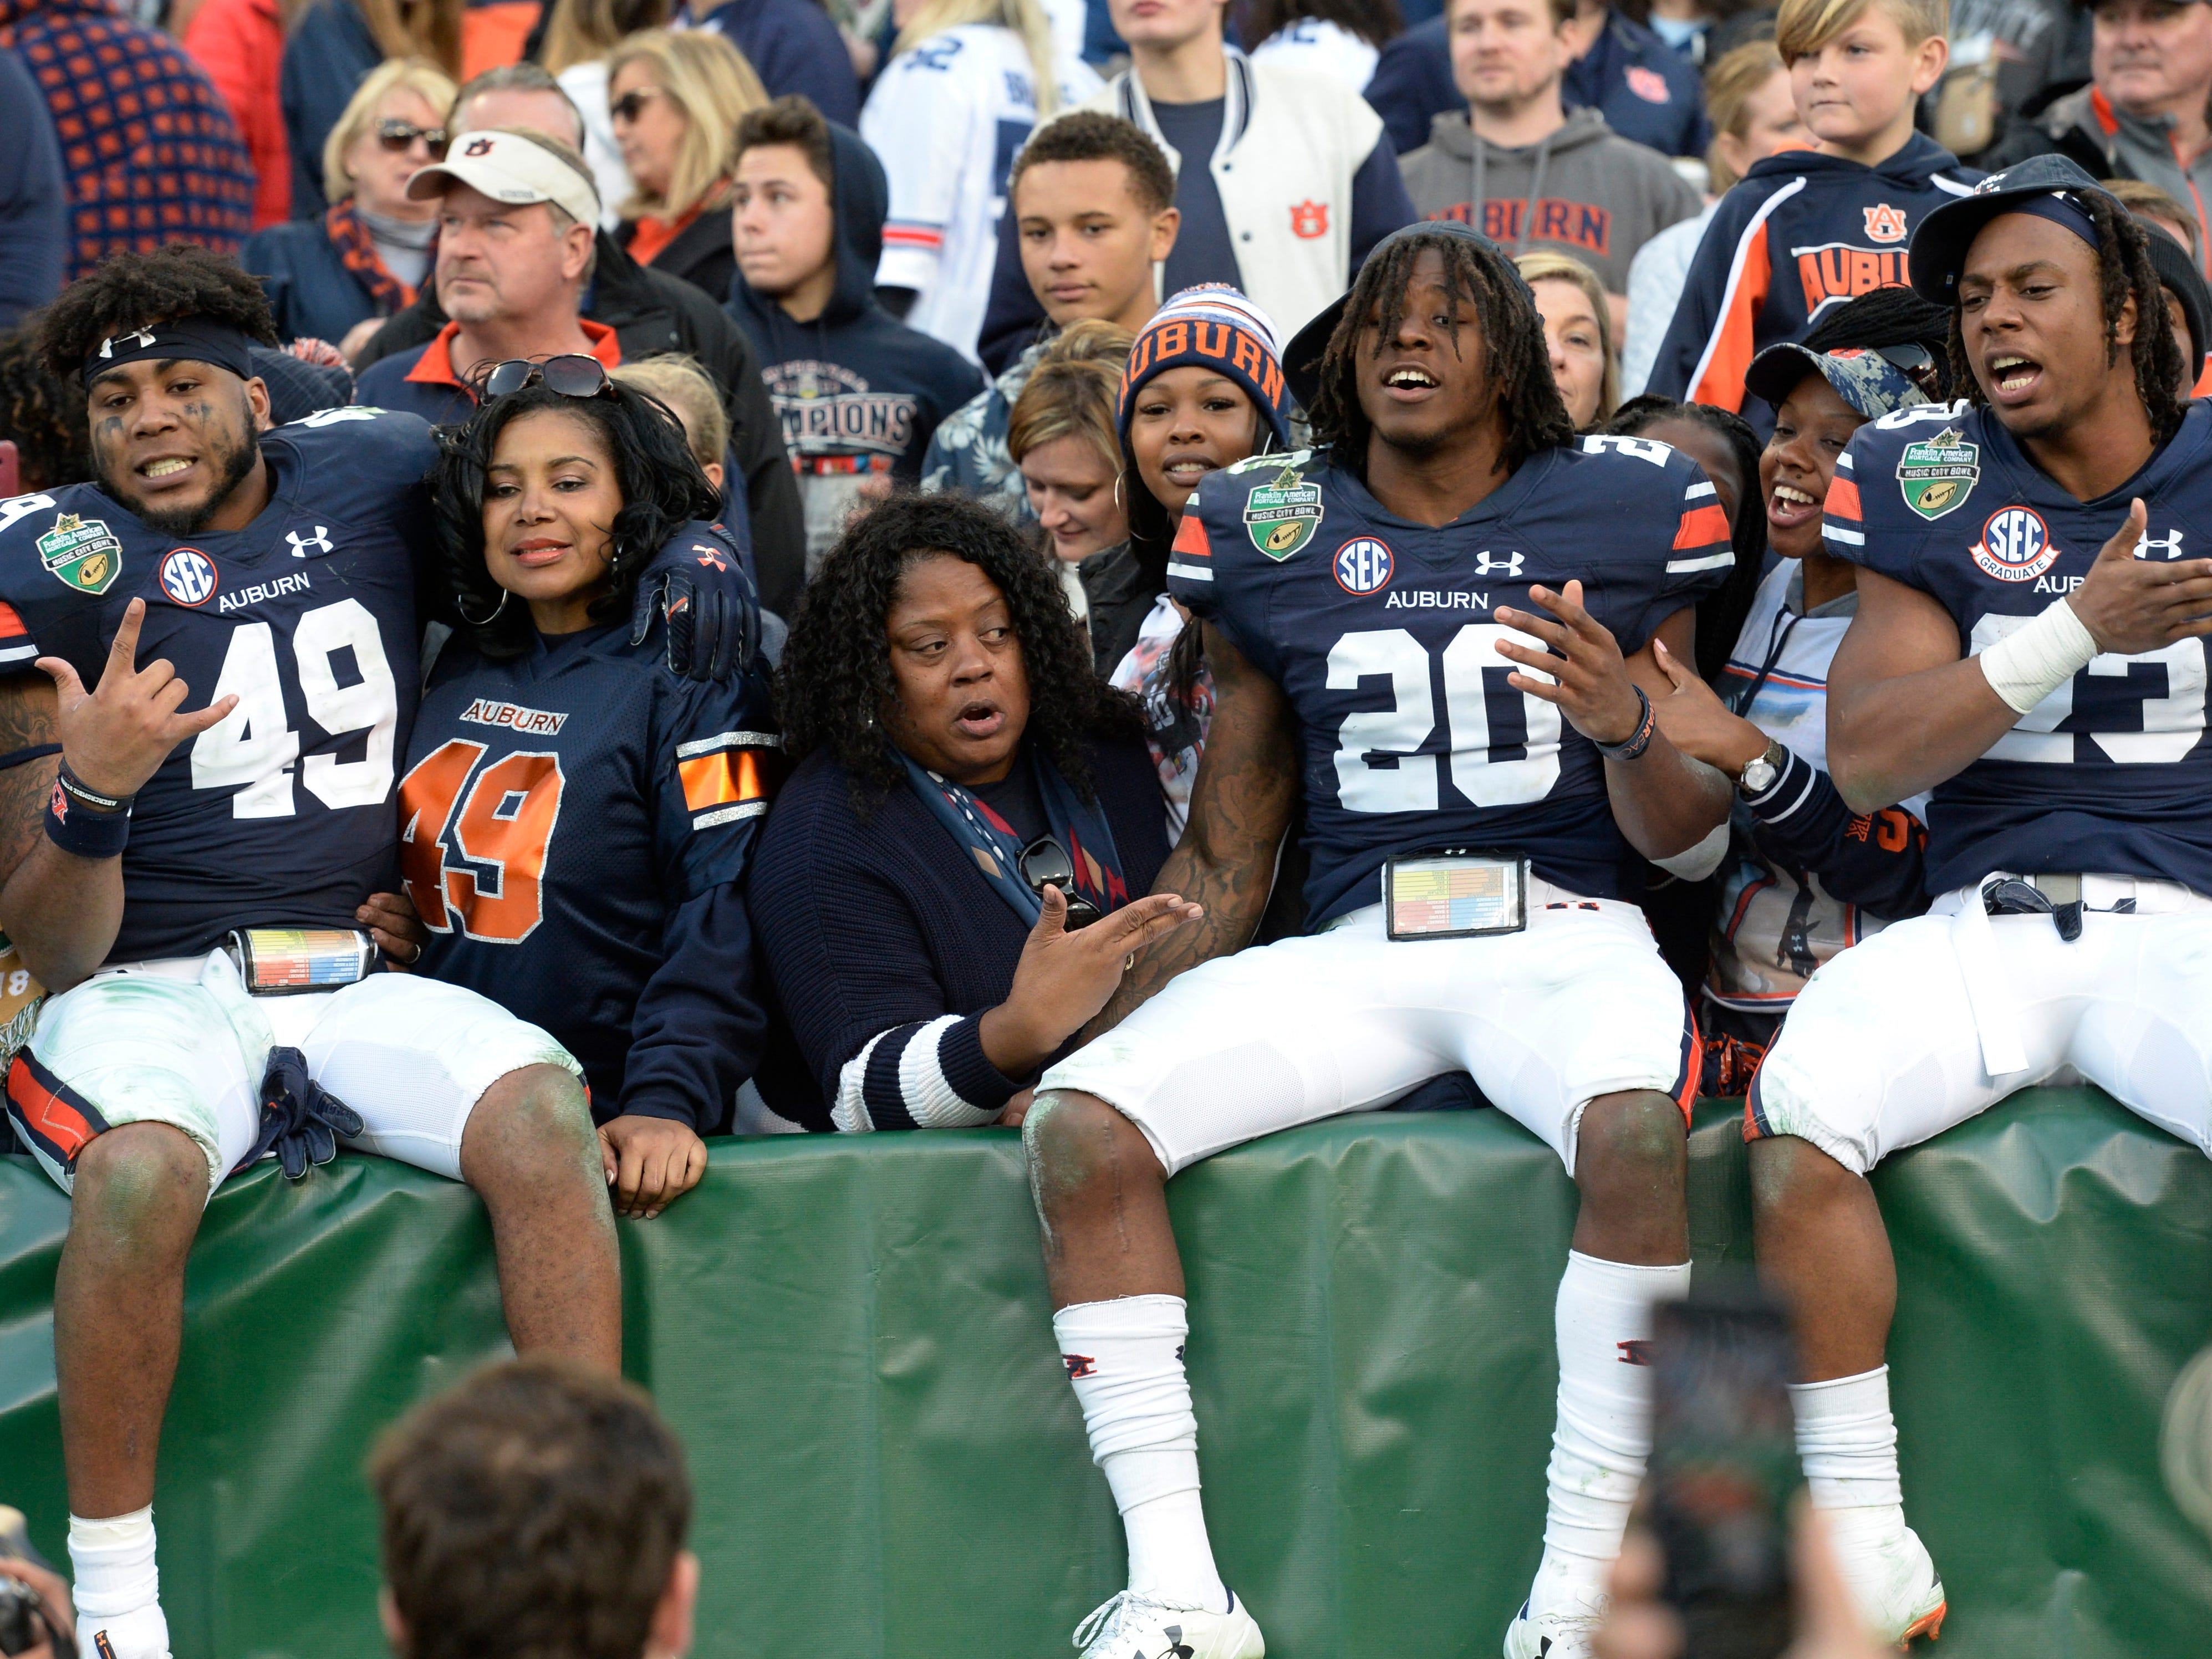 Auburn linebacker Darrell Williams (49), defensive back Jeremiah Dinson (20) and wide receiver Ryan Davis (23) celebrate in the stands after the team's 63-14 win over Purdue in the Music City Bowl NCAA college football game Friday, Dec. 28, 2018, at Nissan Stadium in Nashville, Tenn.